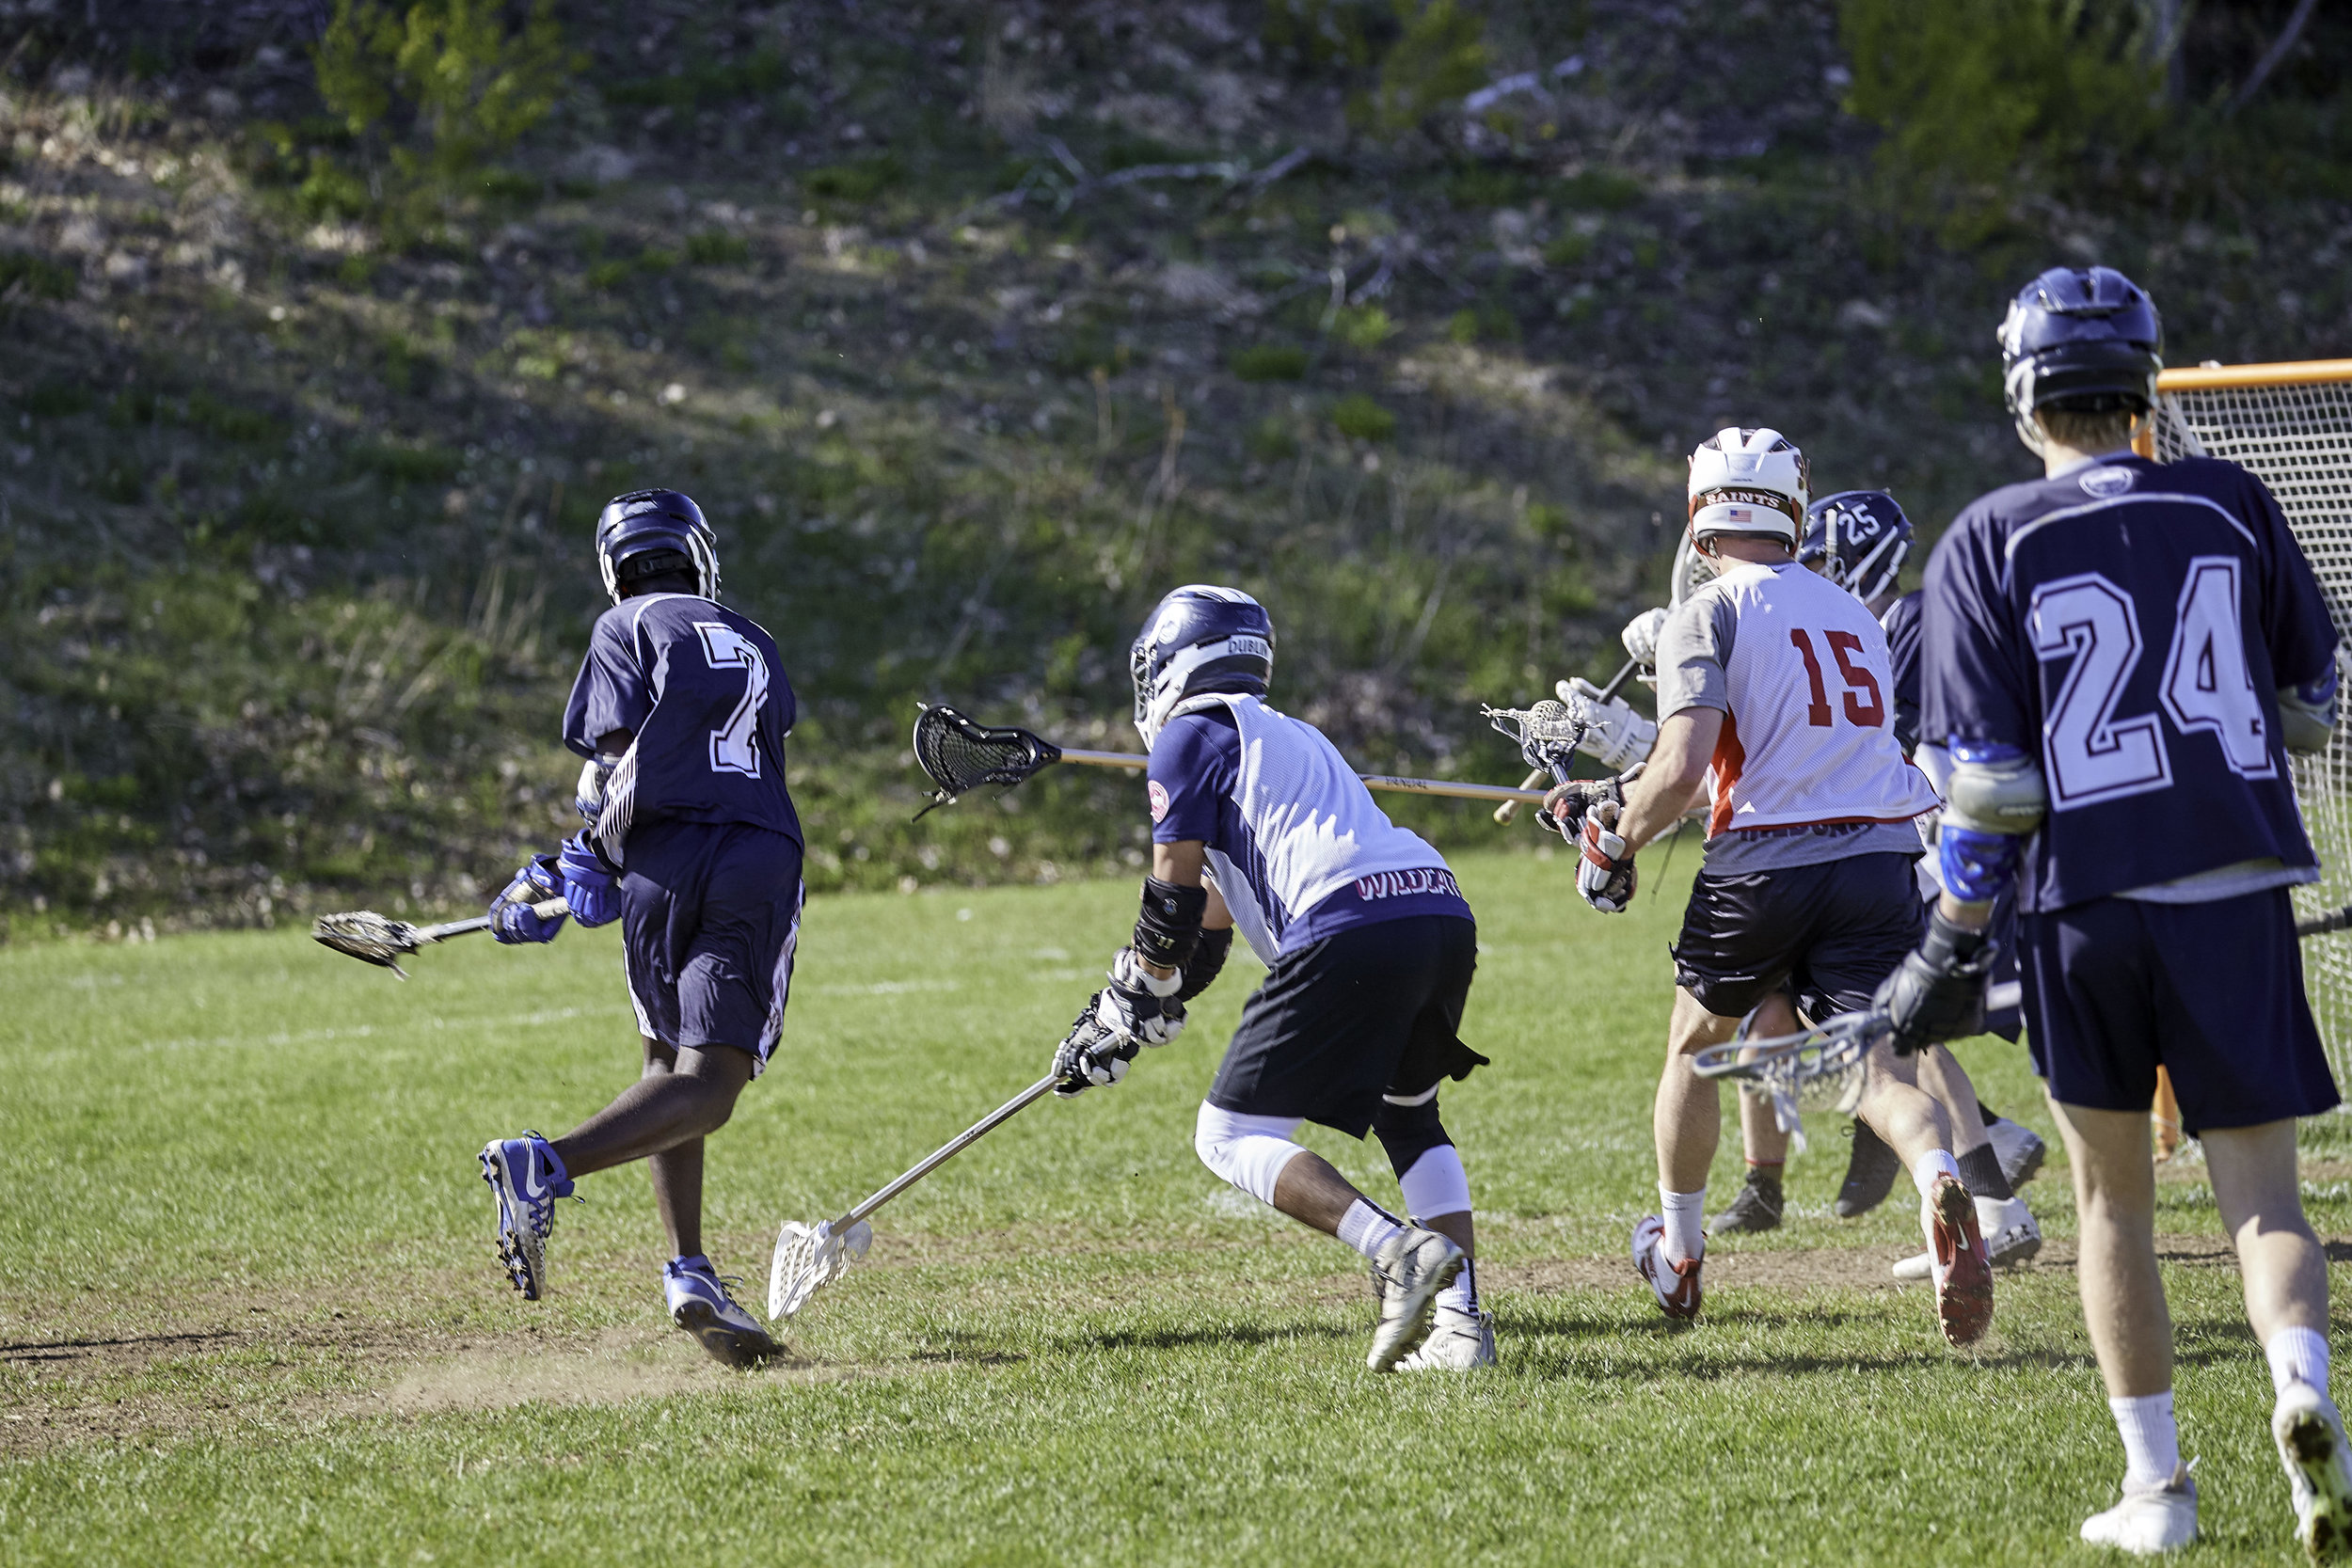 Mike Walter Alumni Game - May 18 2019 - 0238.jpg